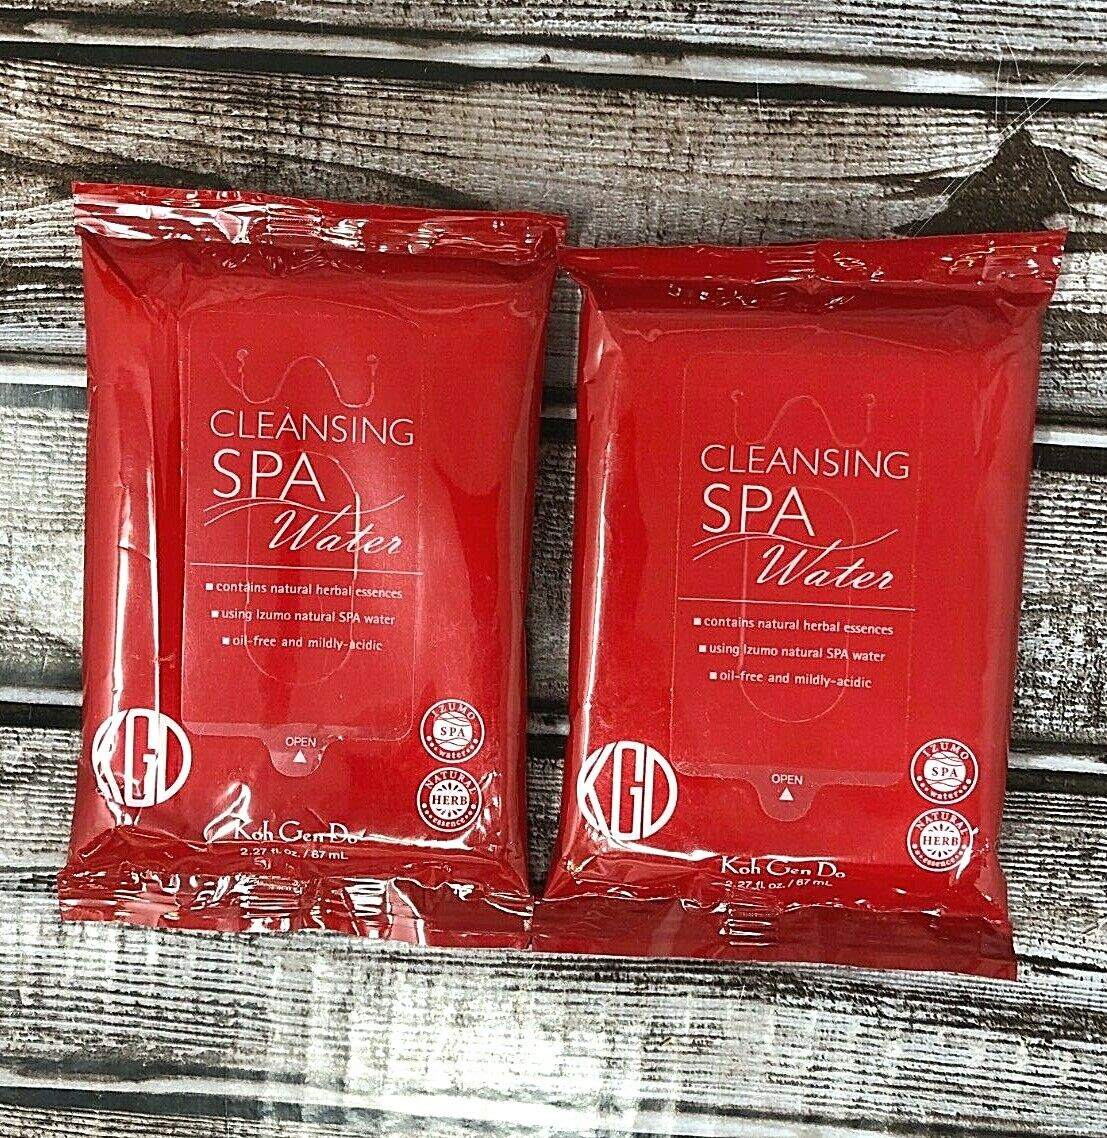 2 PACK KOH GEN DO Cleansing Spa Water 10-Pack Ultra Mild Clo